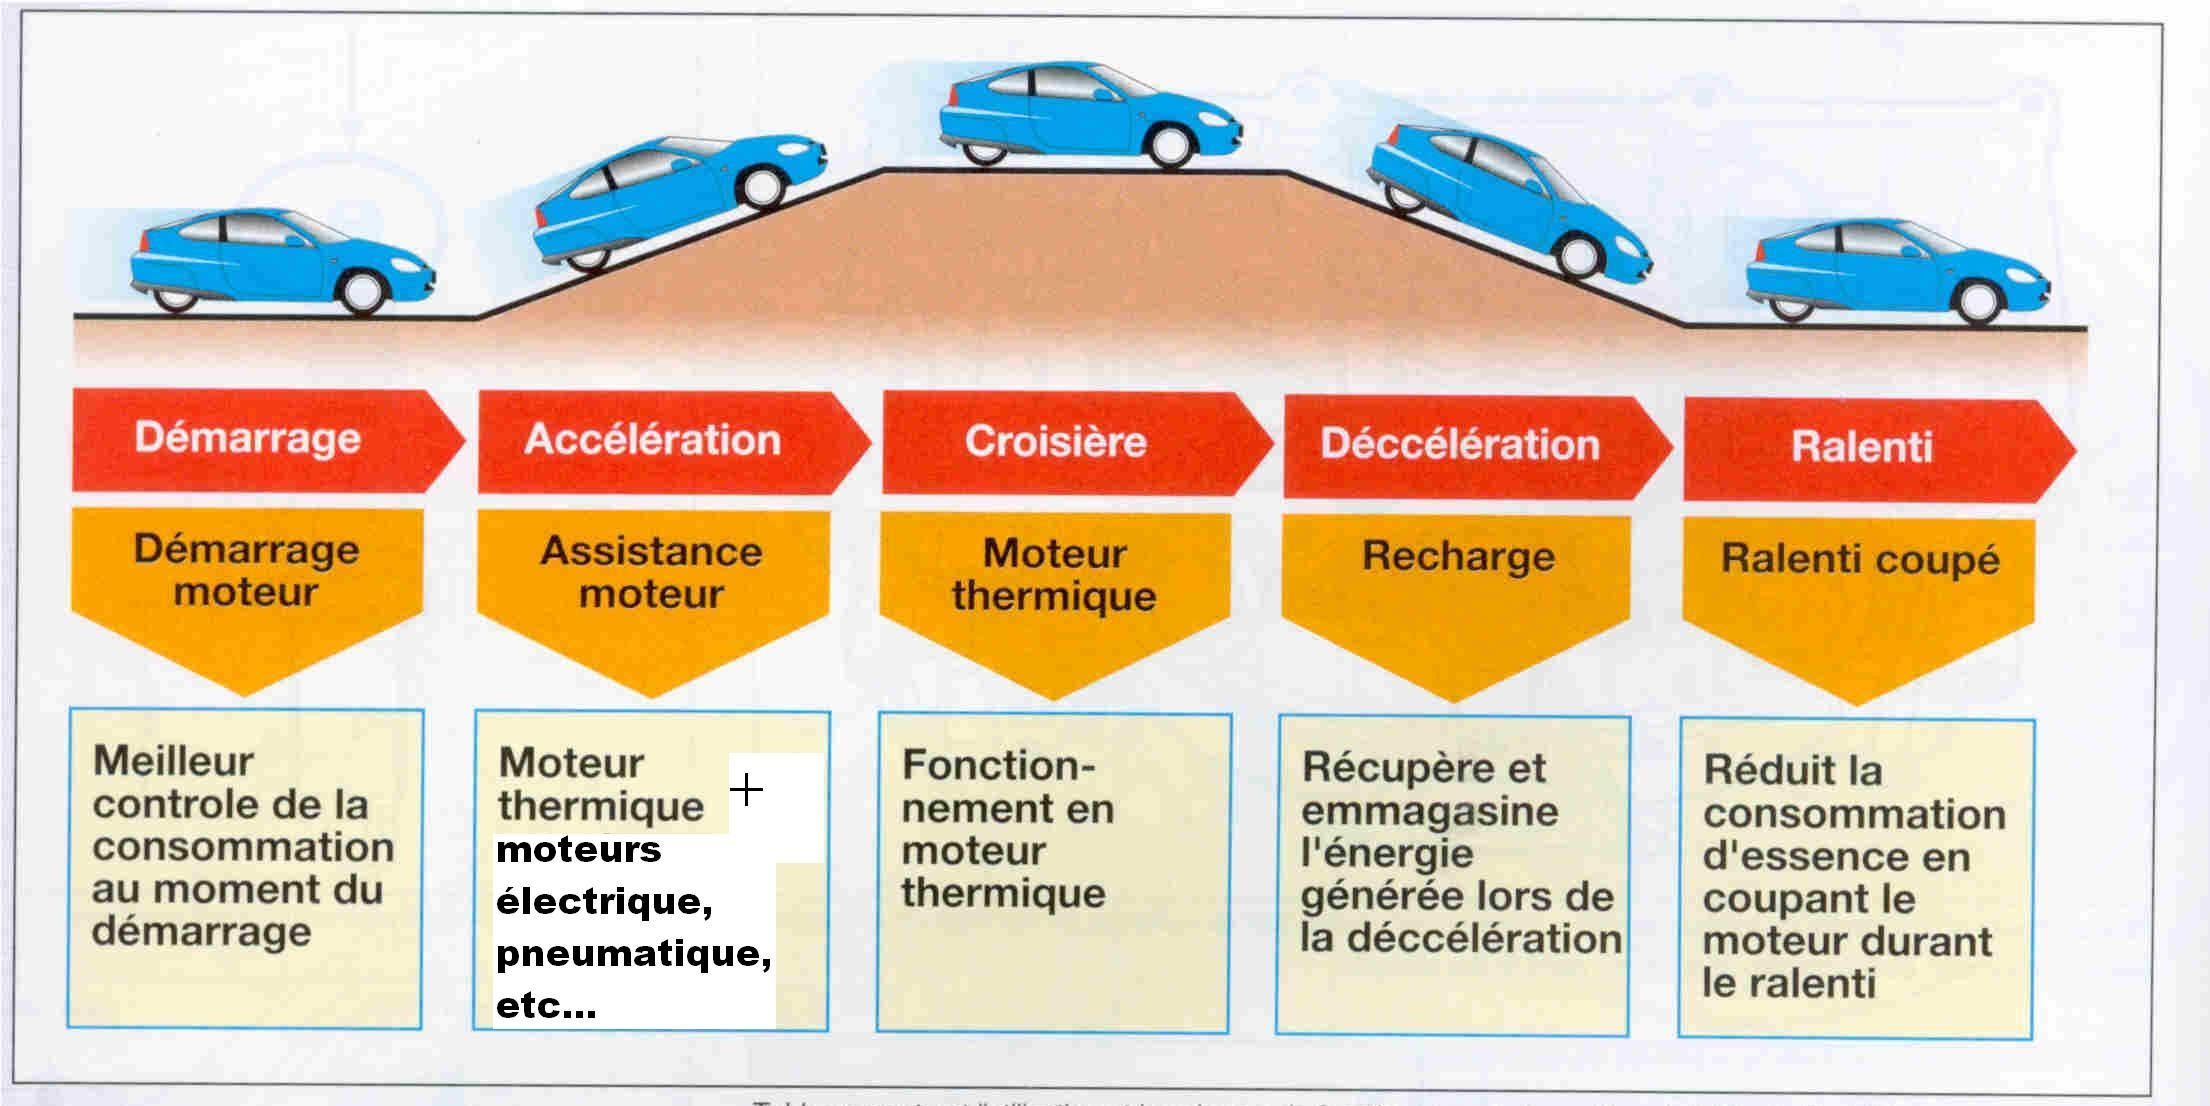 Kinetic enercy recovery of the car when it is braking or descending